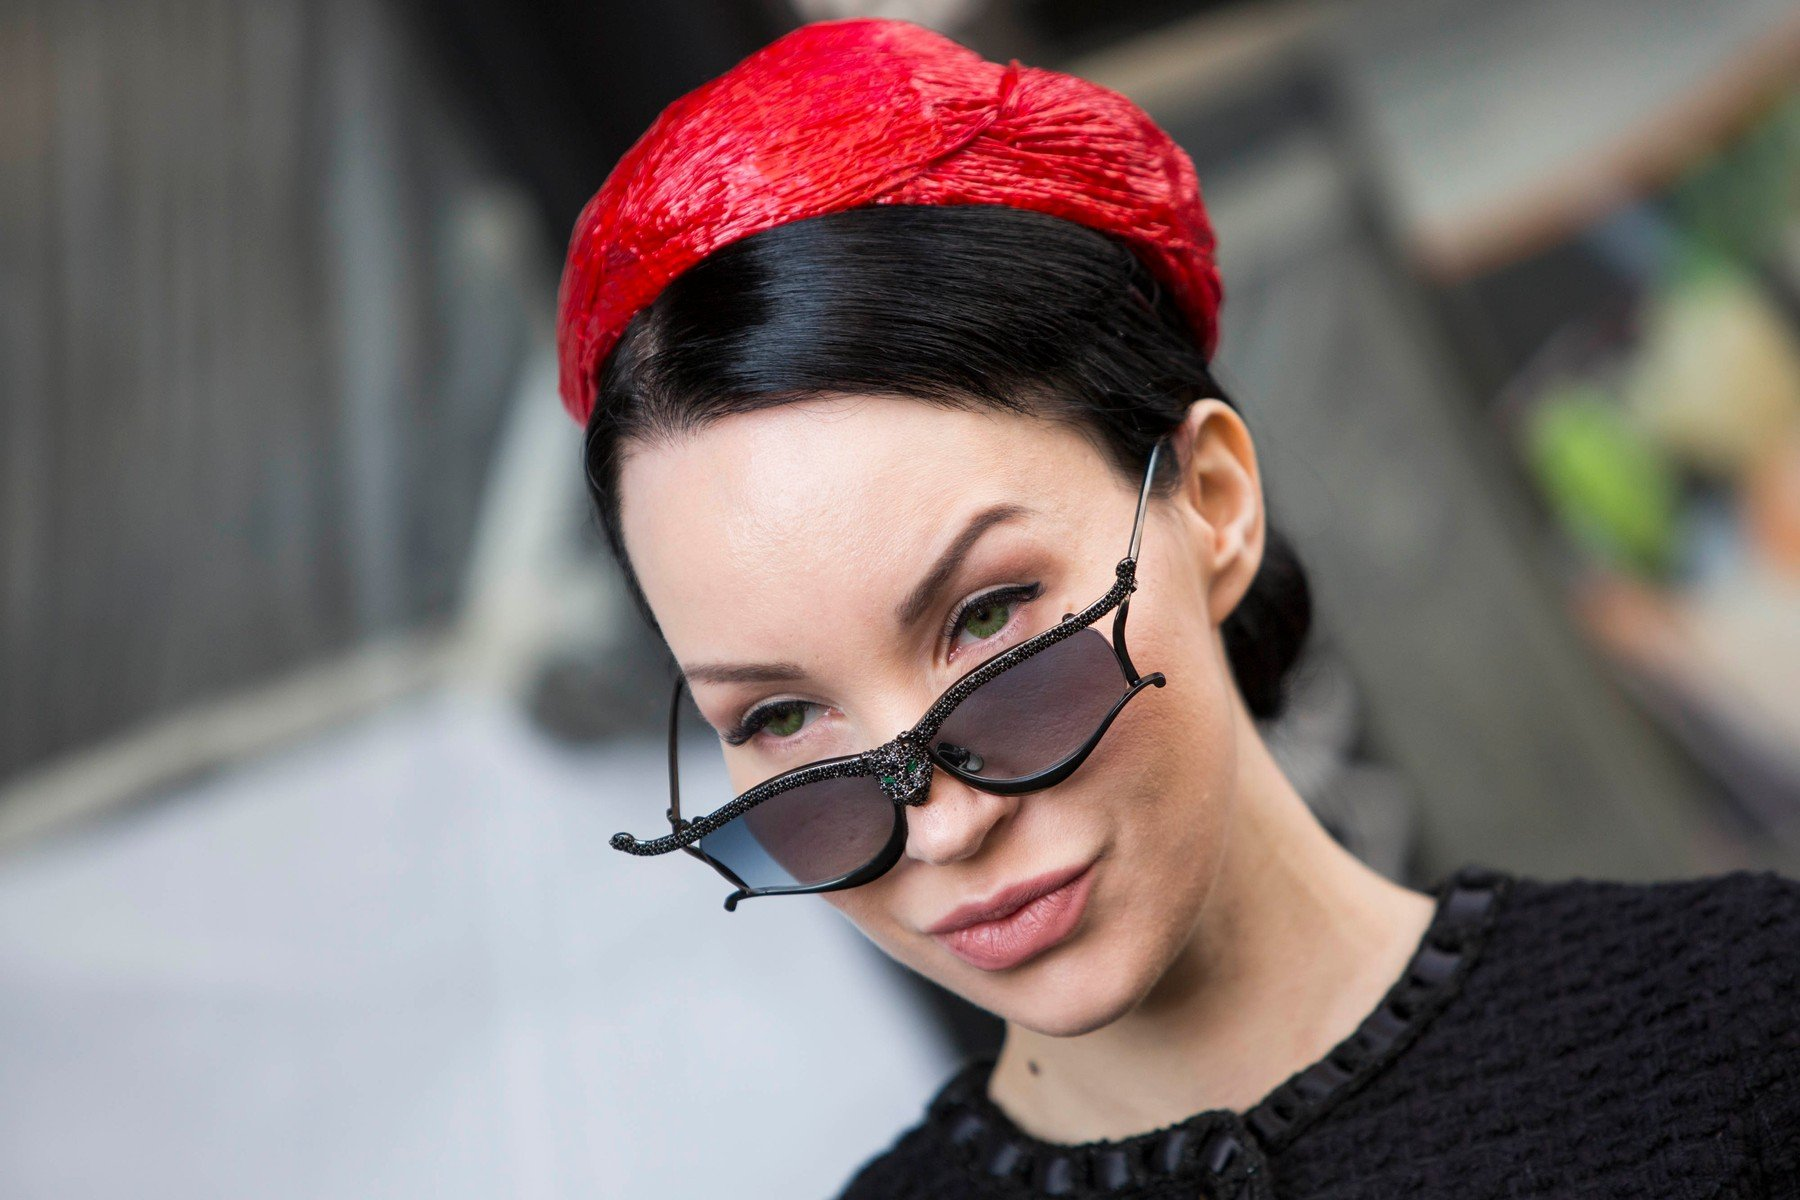 Fashion: street style at Milan Fashion Week 2019 outside of the Byblos show in Milan on February 20, 2019. 20 Feb 2019, Image: 414928776, License: Rights-managed, Restrictions: World Rights, Model Release: no, Credit line: Profimedia, Mega Agency